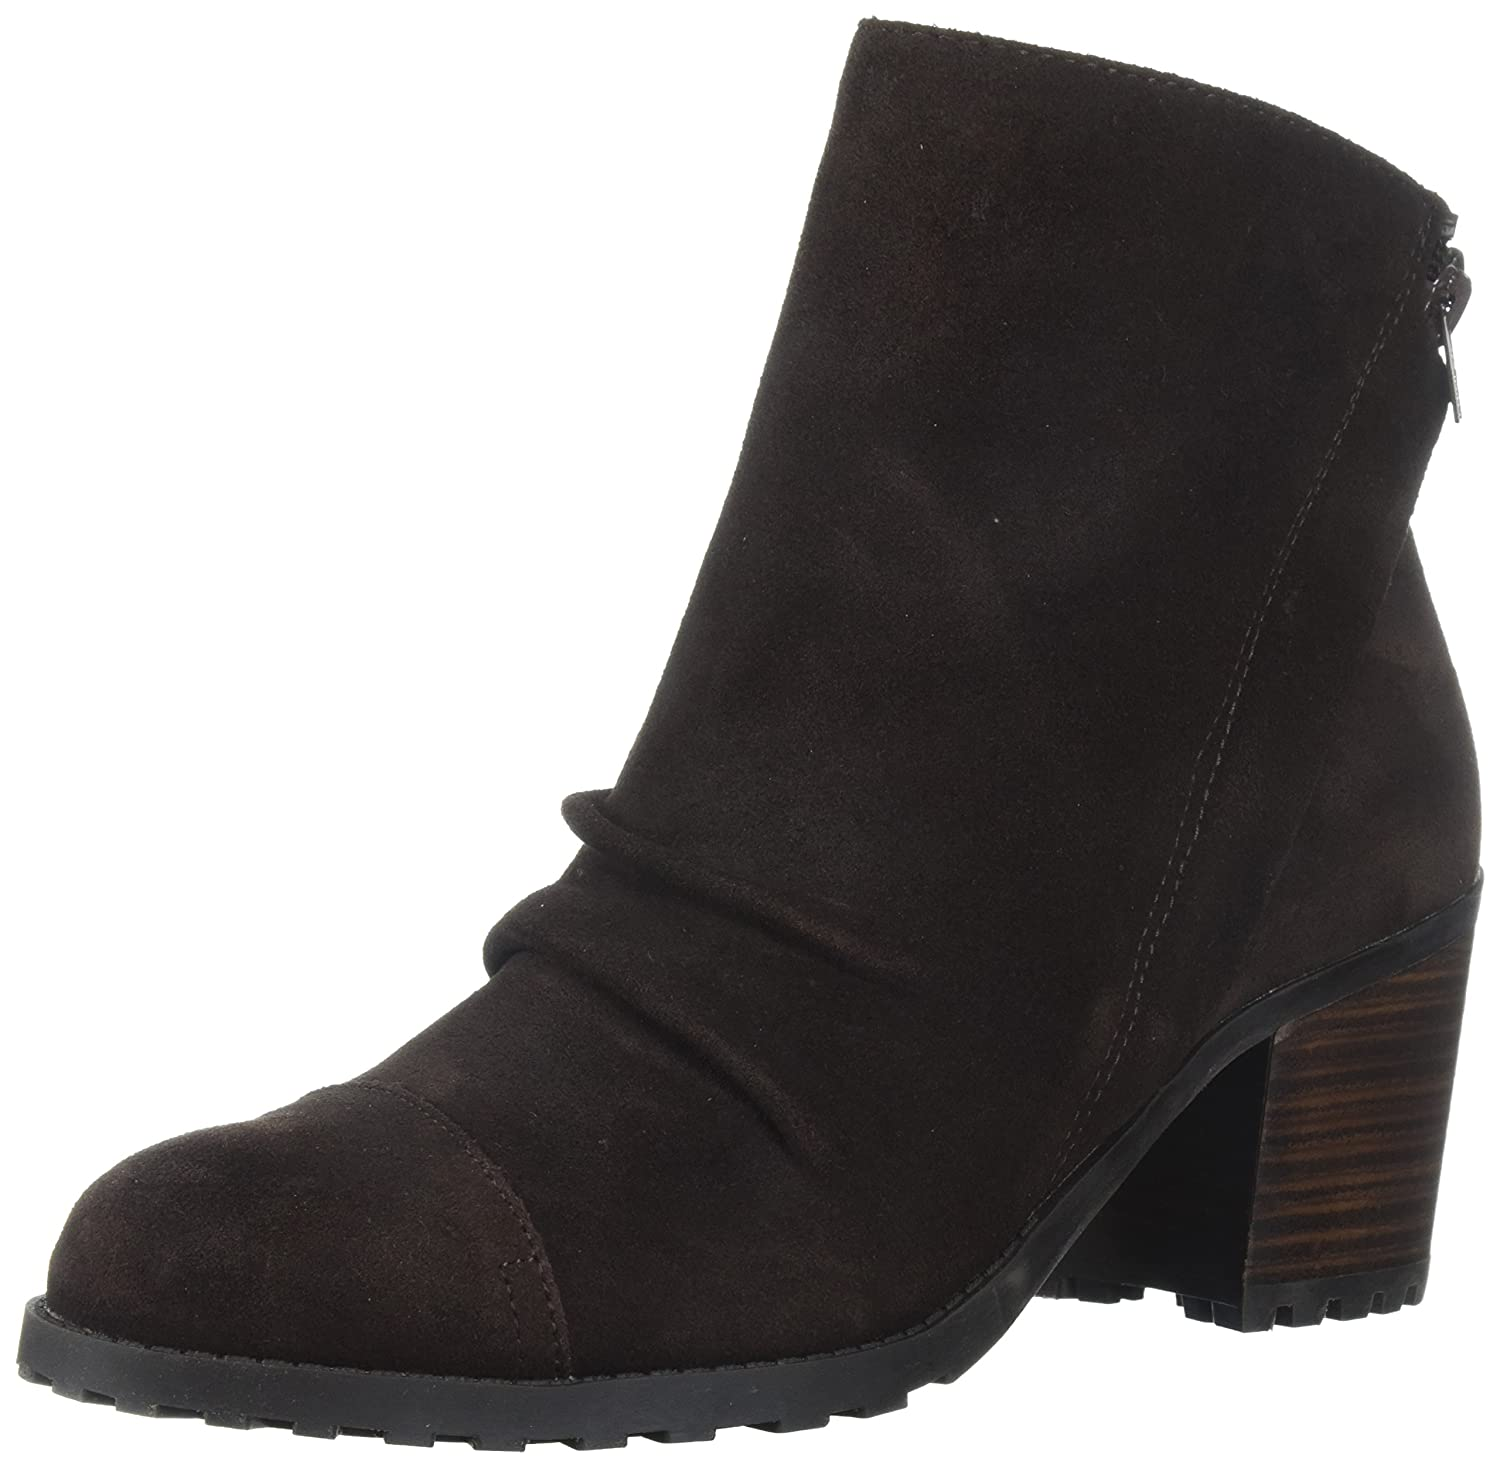 Aerosoles Women's Province Ankle Boot B06Y61XW6Z 11 B(M) US|Dark Brown Suede